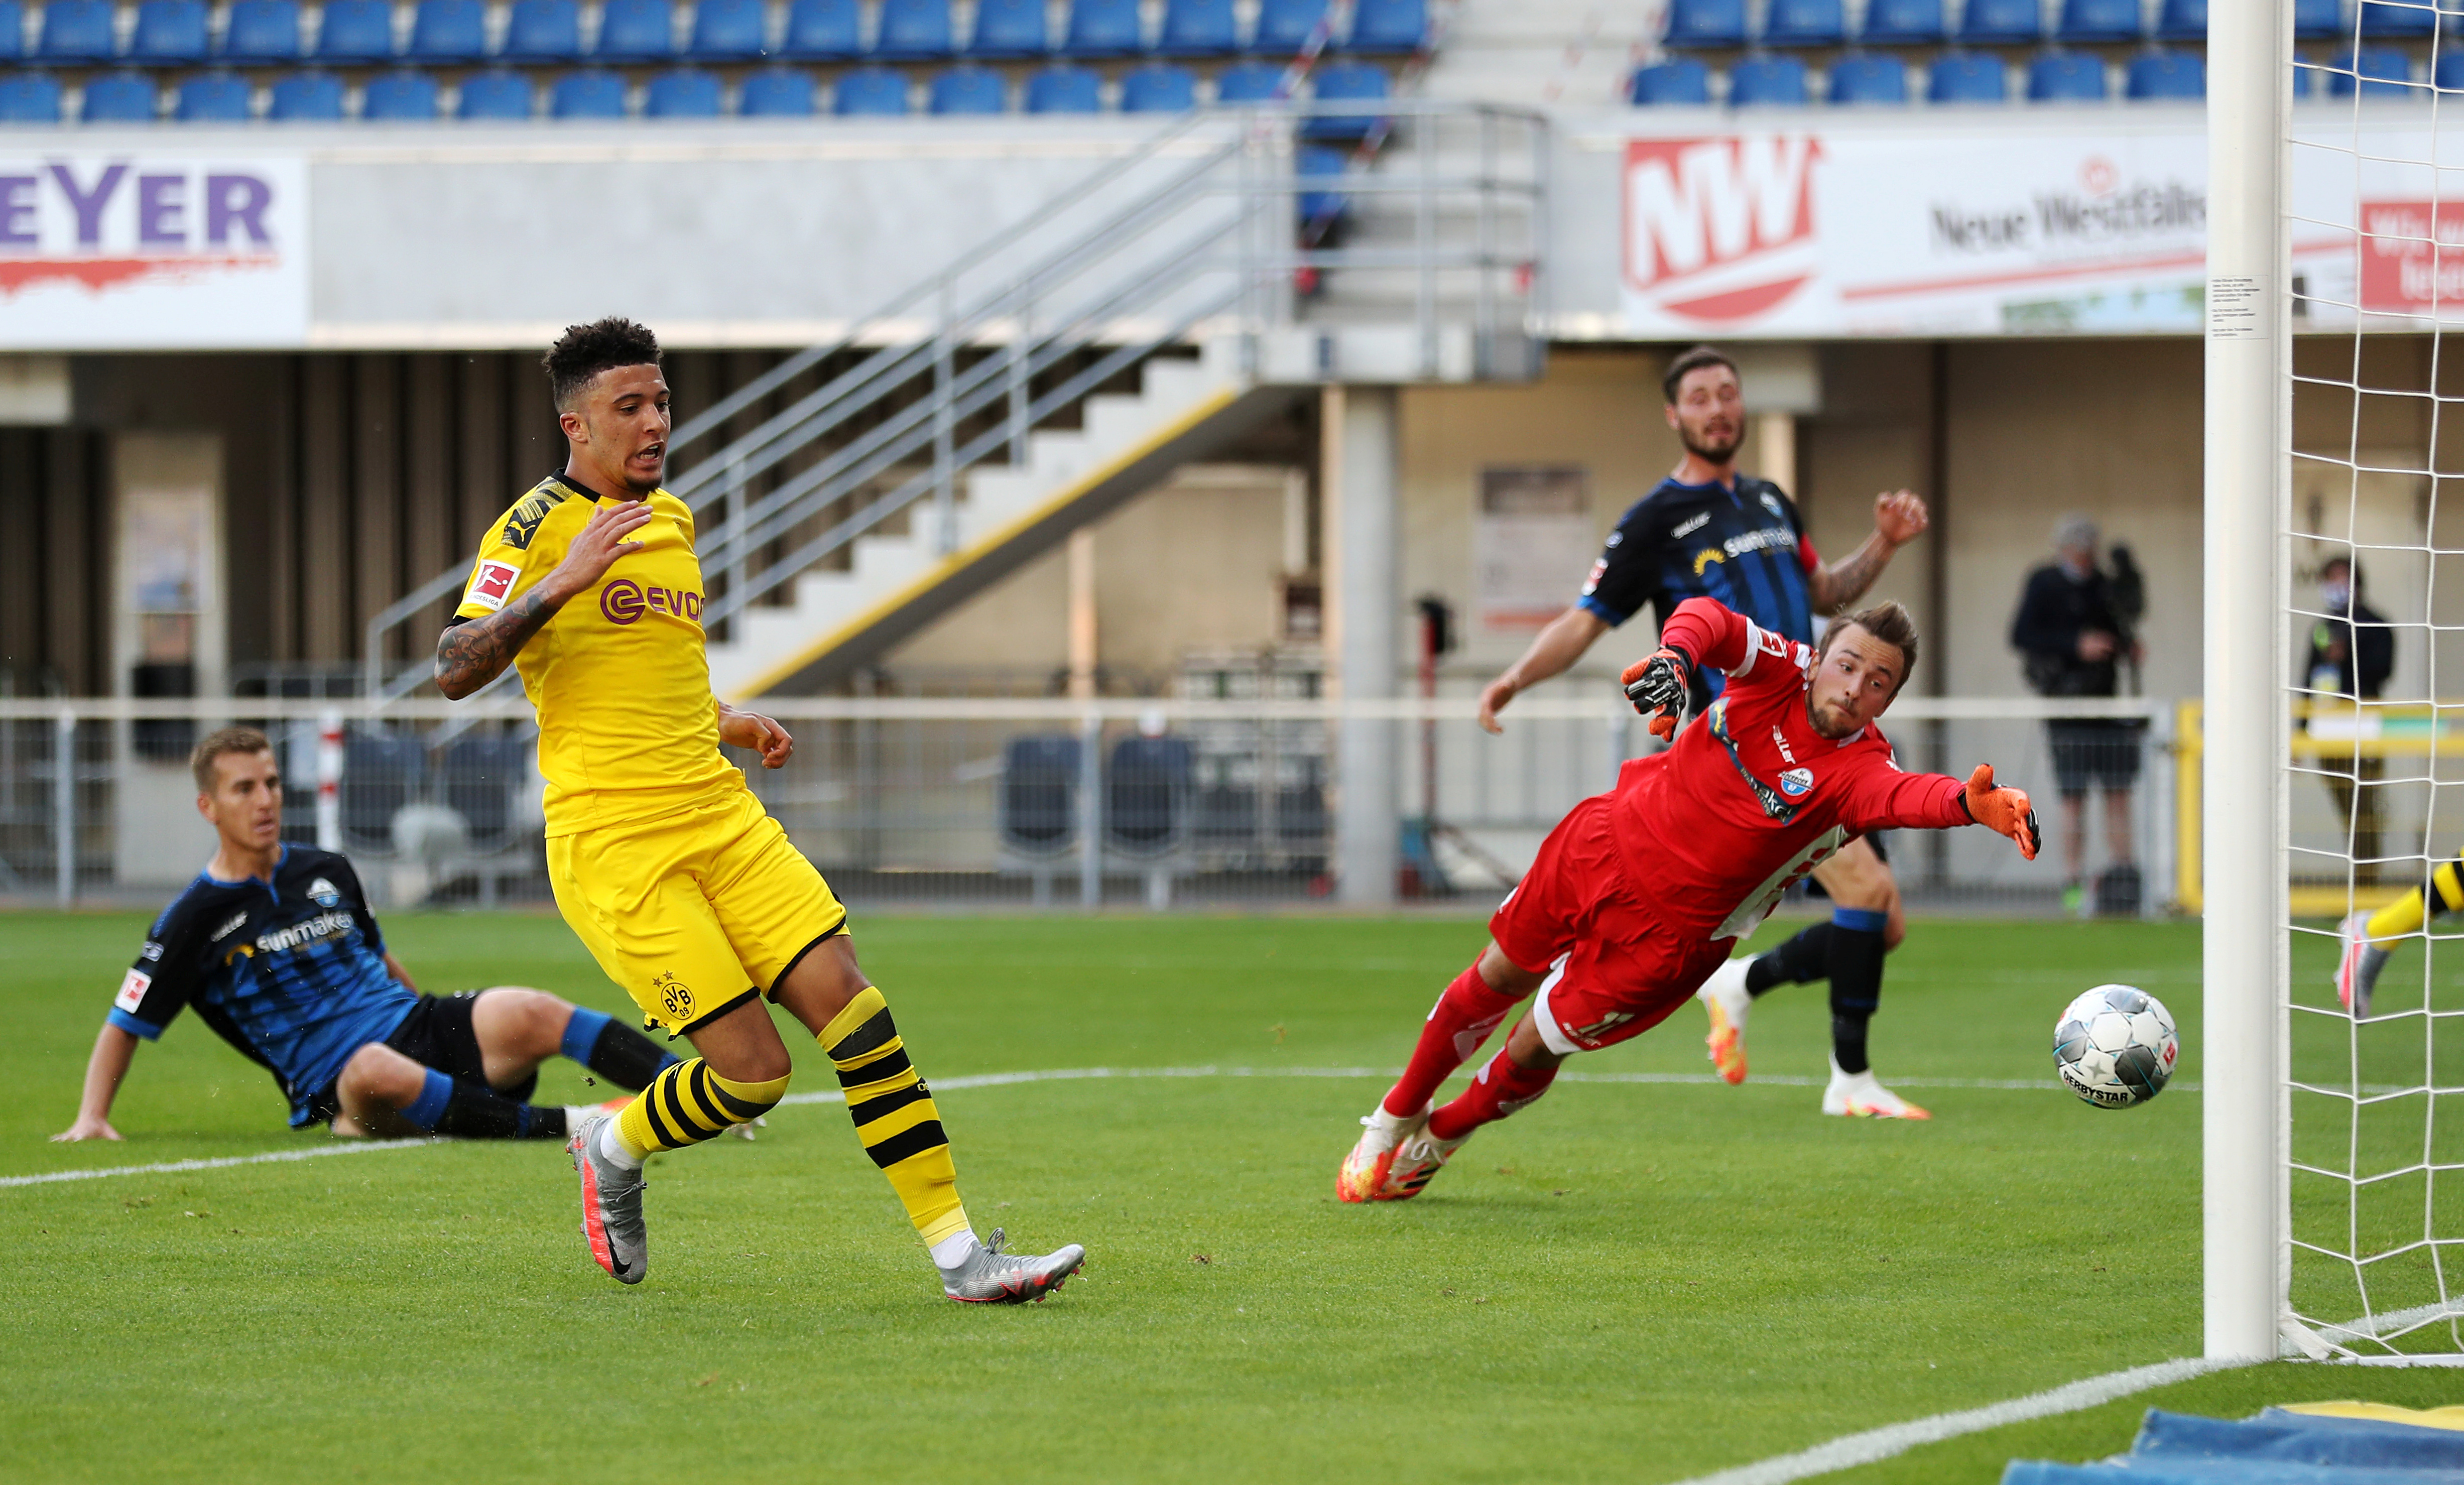 Borussia Dortmund's Jadon Sancho scores their second goal, as play resumes behind closed doors following the outbreak of the coronavirus disease (COVID-19) during the Bundesliga match between SC Paderborn and Borussia Dortmund, at Benteler Arena, in Paderborn, Germany, on May 31, 2020. Photo:   Lars Baron/Pool via Reuters